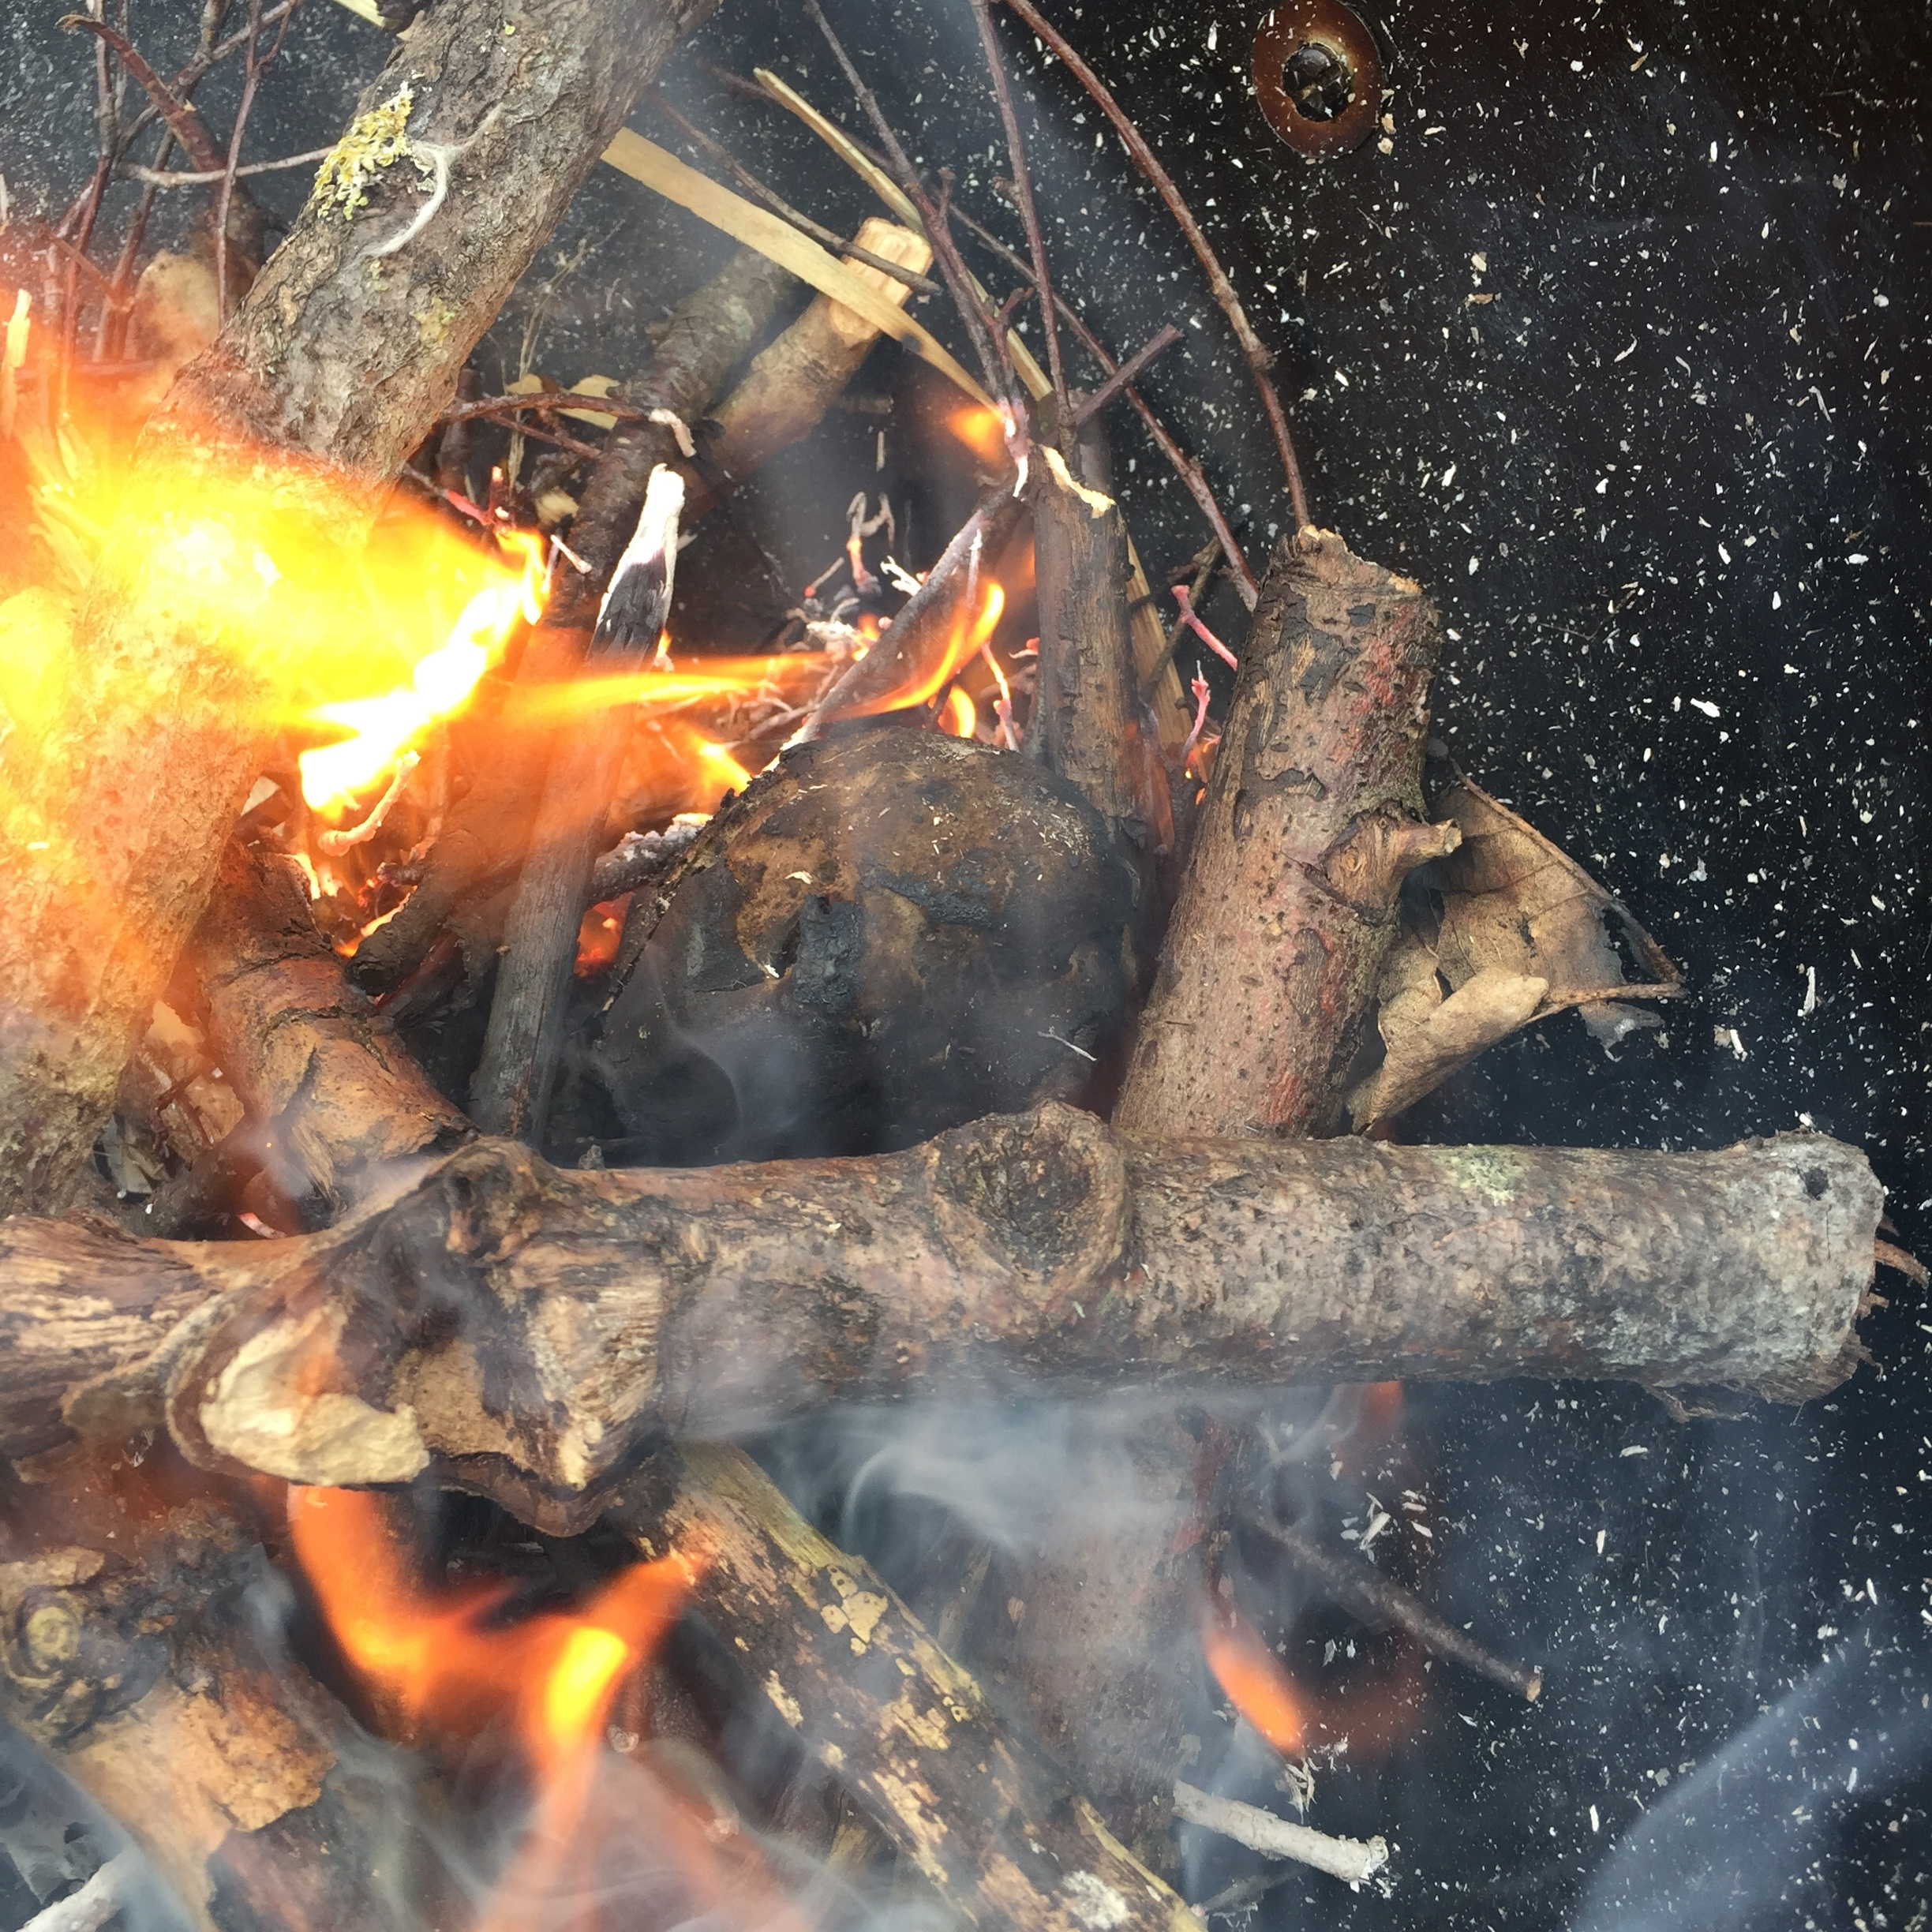 The fungus is the round black lump that looks a bit like coal in the centre of the fire.